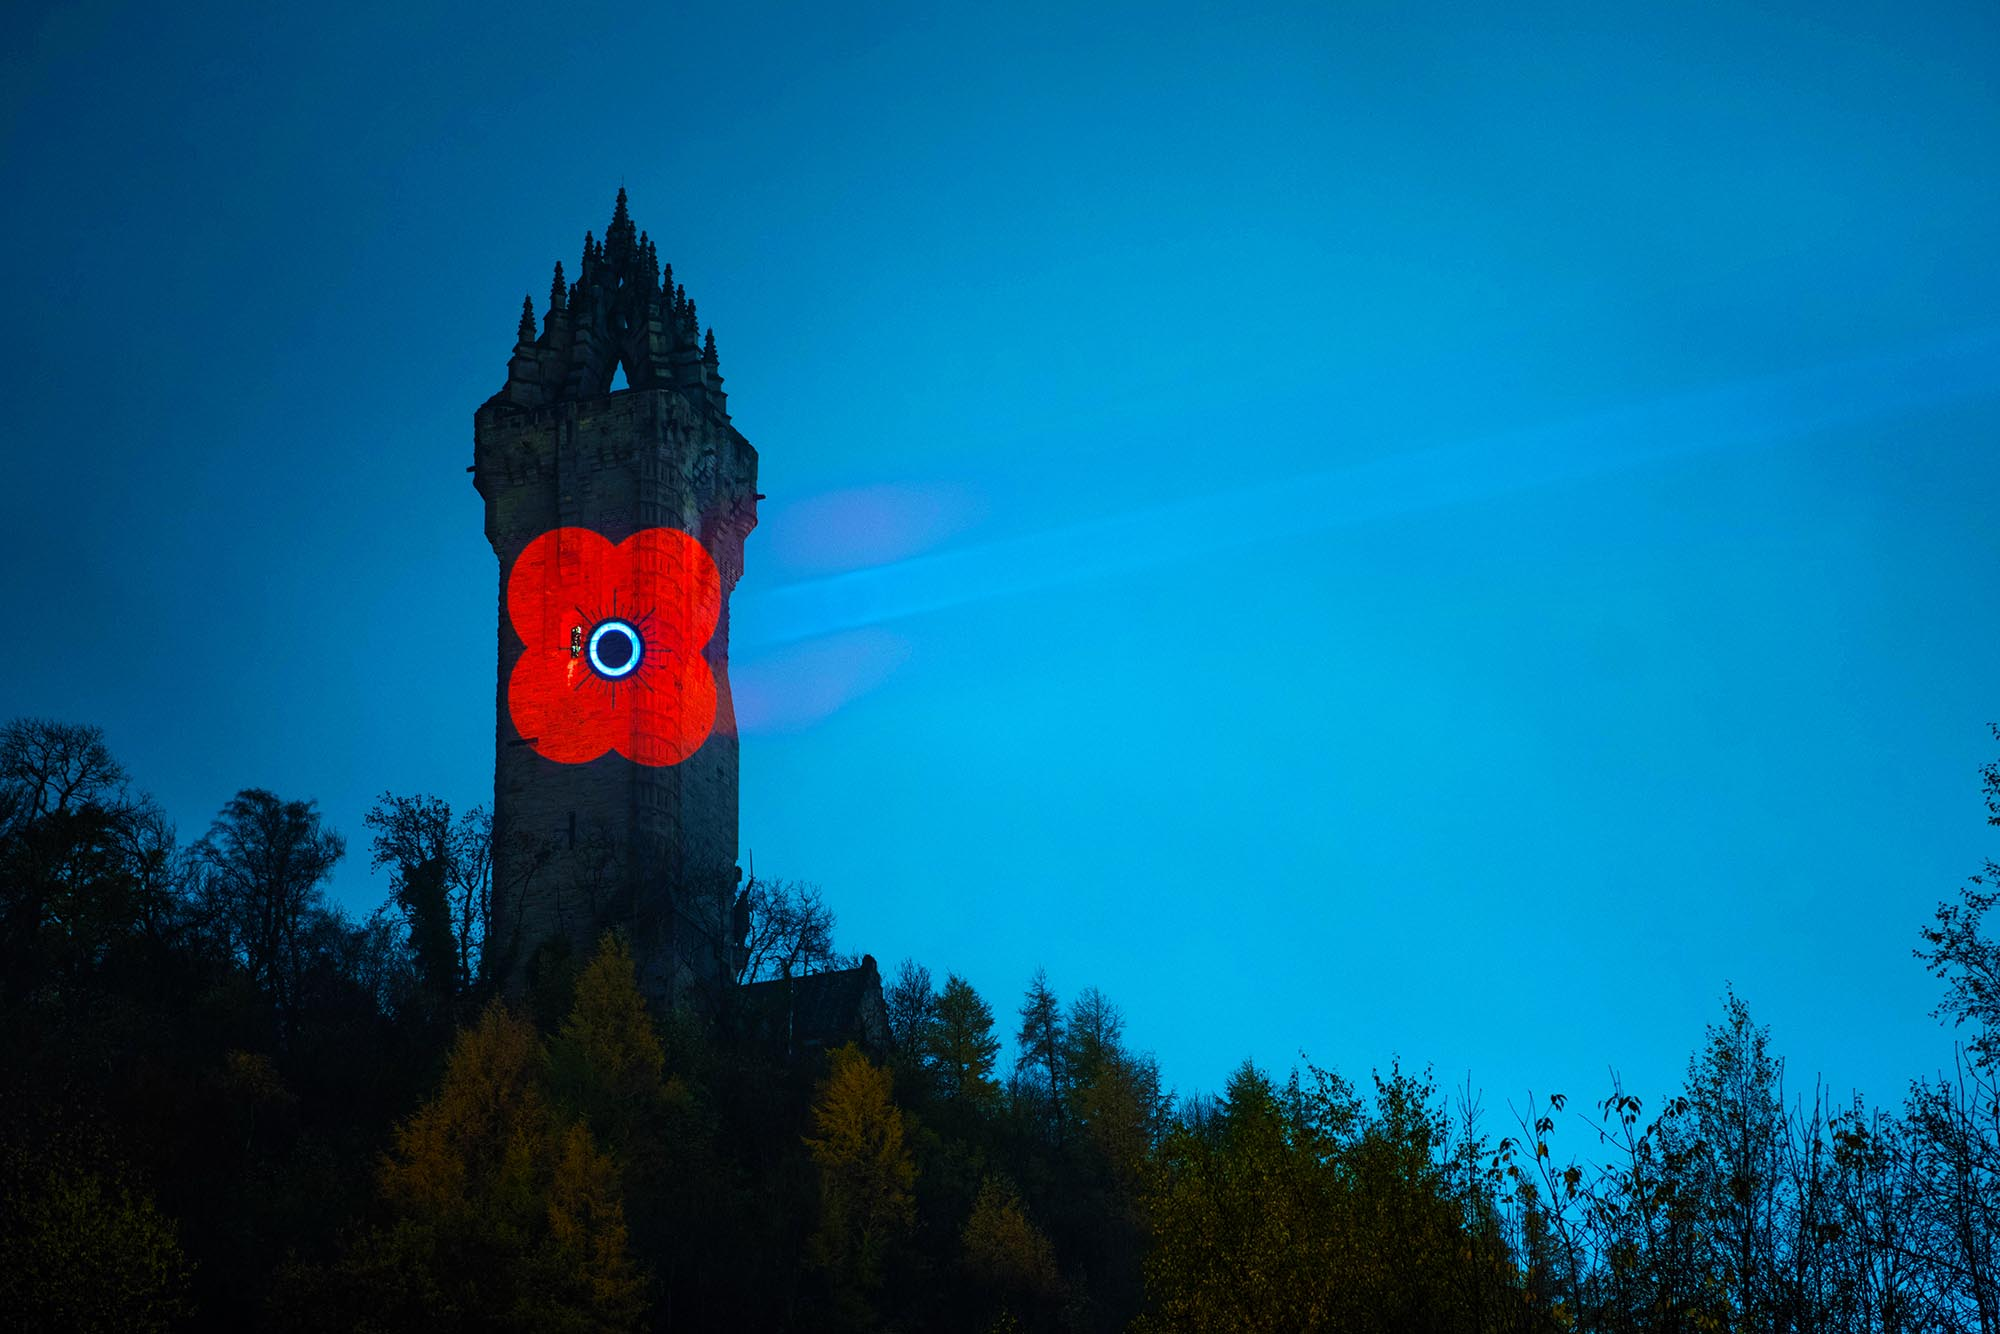 Poppy Scotland logo projected onto the National Wallace Monument